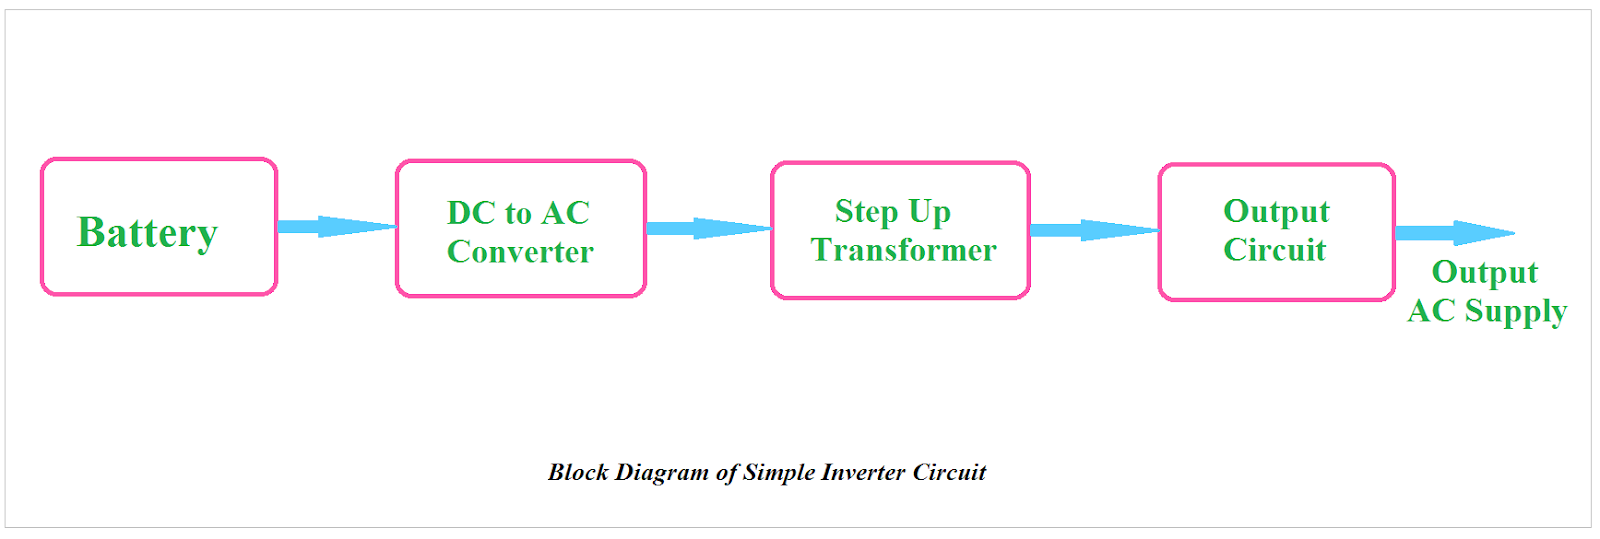 Actual Difference Between UPS and Inverter - ETechnoG on ups circuit design, slc 500 power supply wiring diagram, as is to be diagram, schematic diagram, ignition switch diagram, ups installation, ups computer, vmware view diagram, switching power supply diagram, proxy diagram, relay diagram, ballast diagram, wind energy diagram,